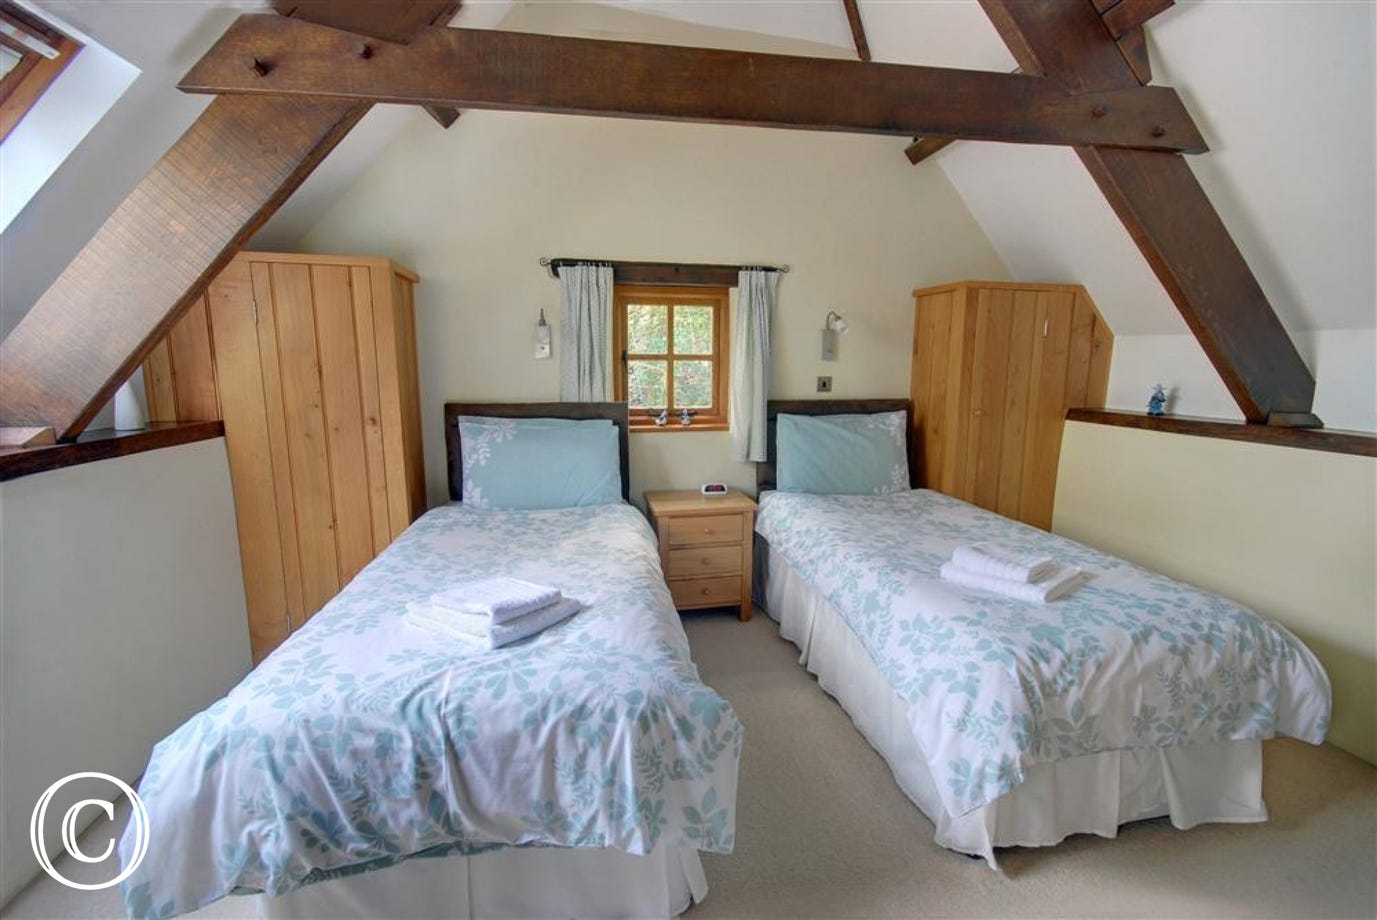 The twin bedroom has a built in oak wardrobe and a garden outlook.